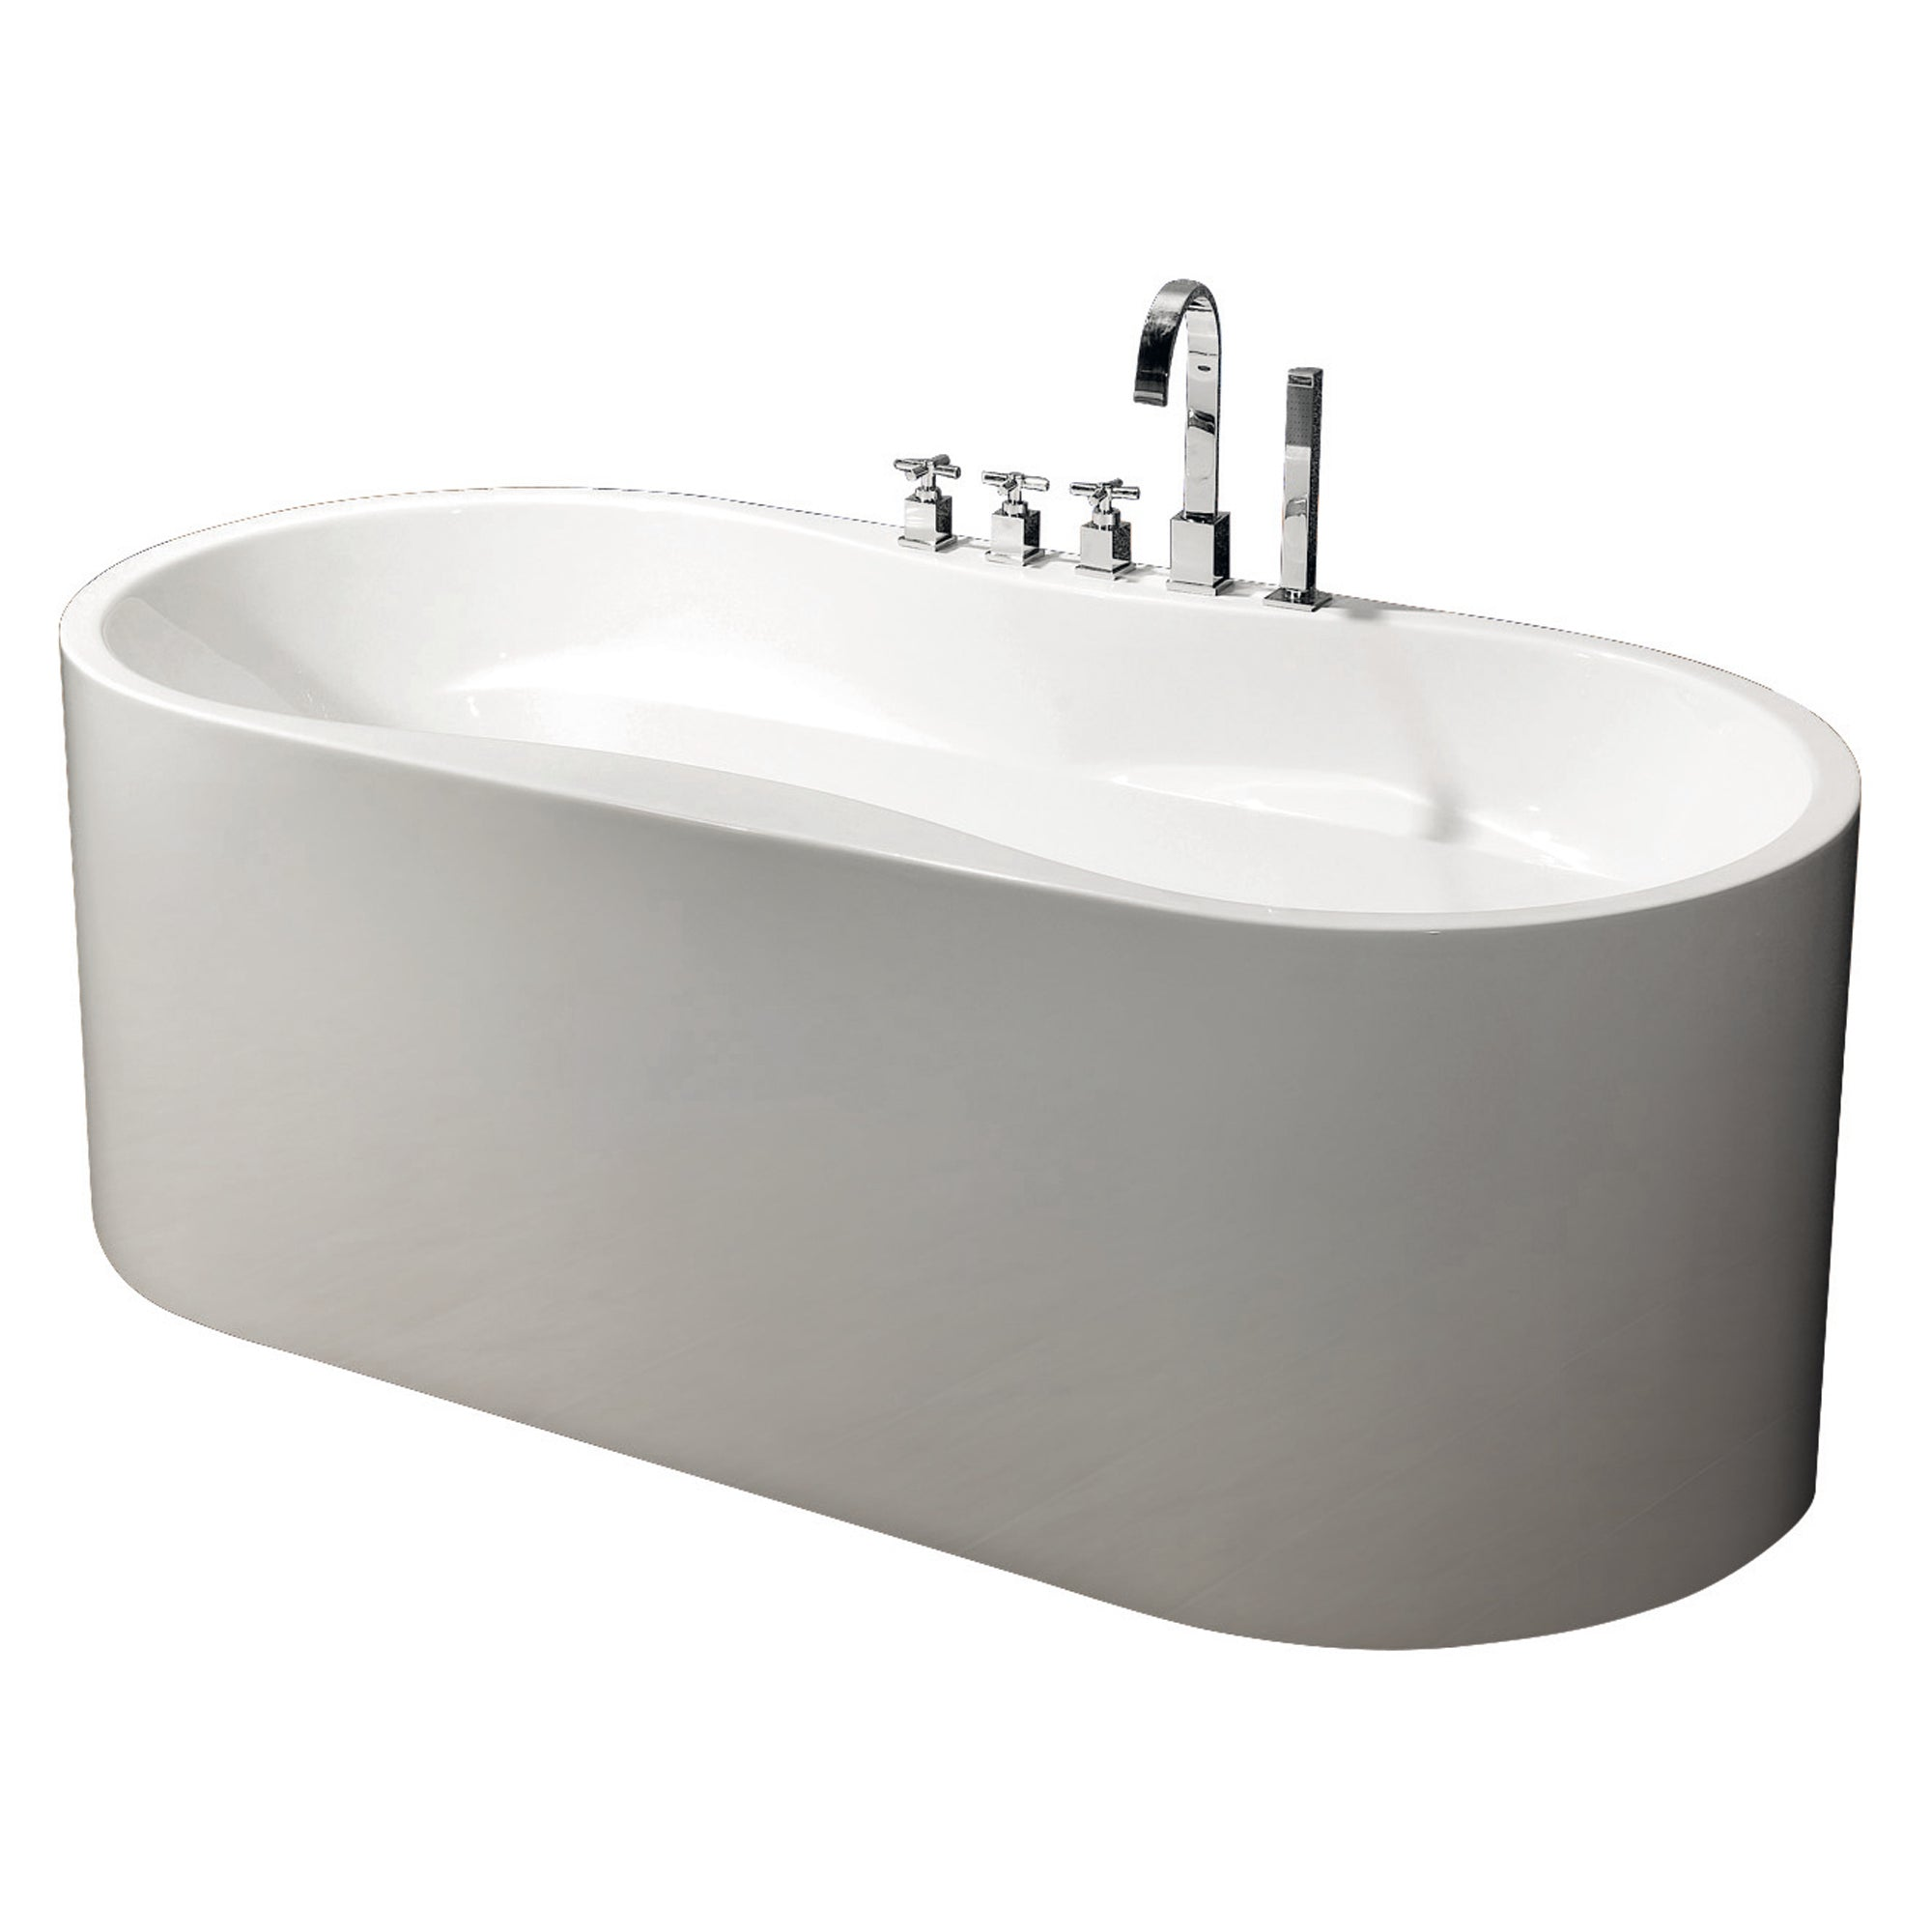 Modern Glossy White Freestanding Acrylic Bathtub with Drainage ...